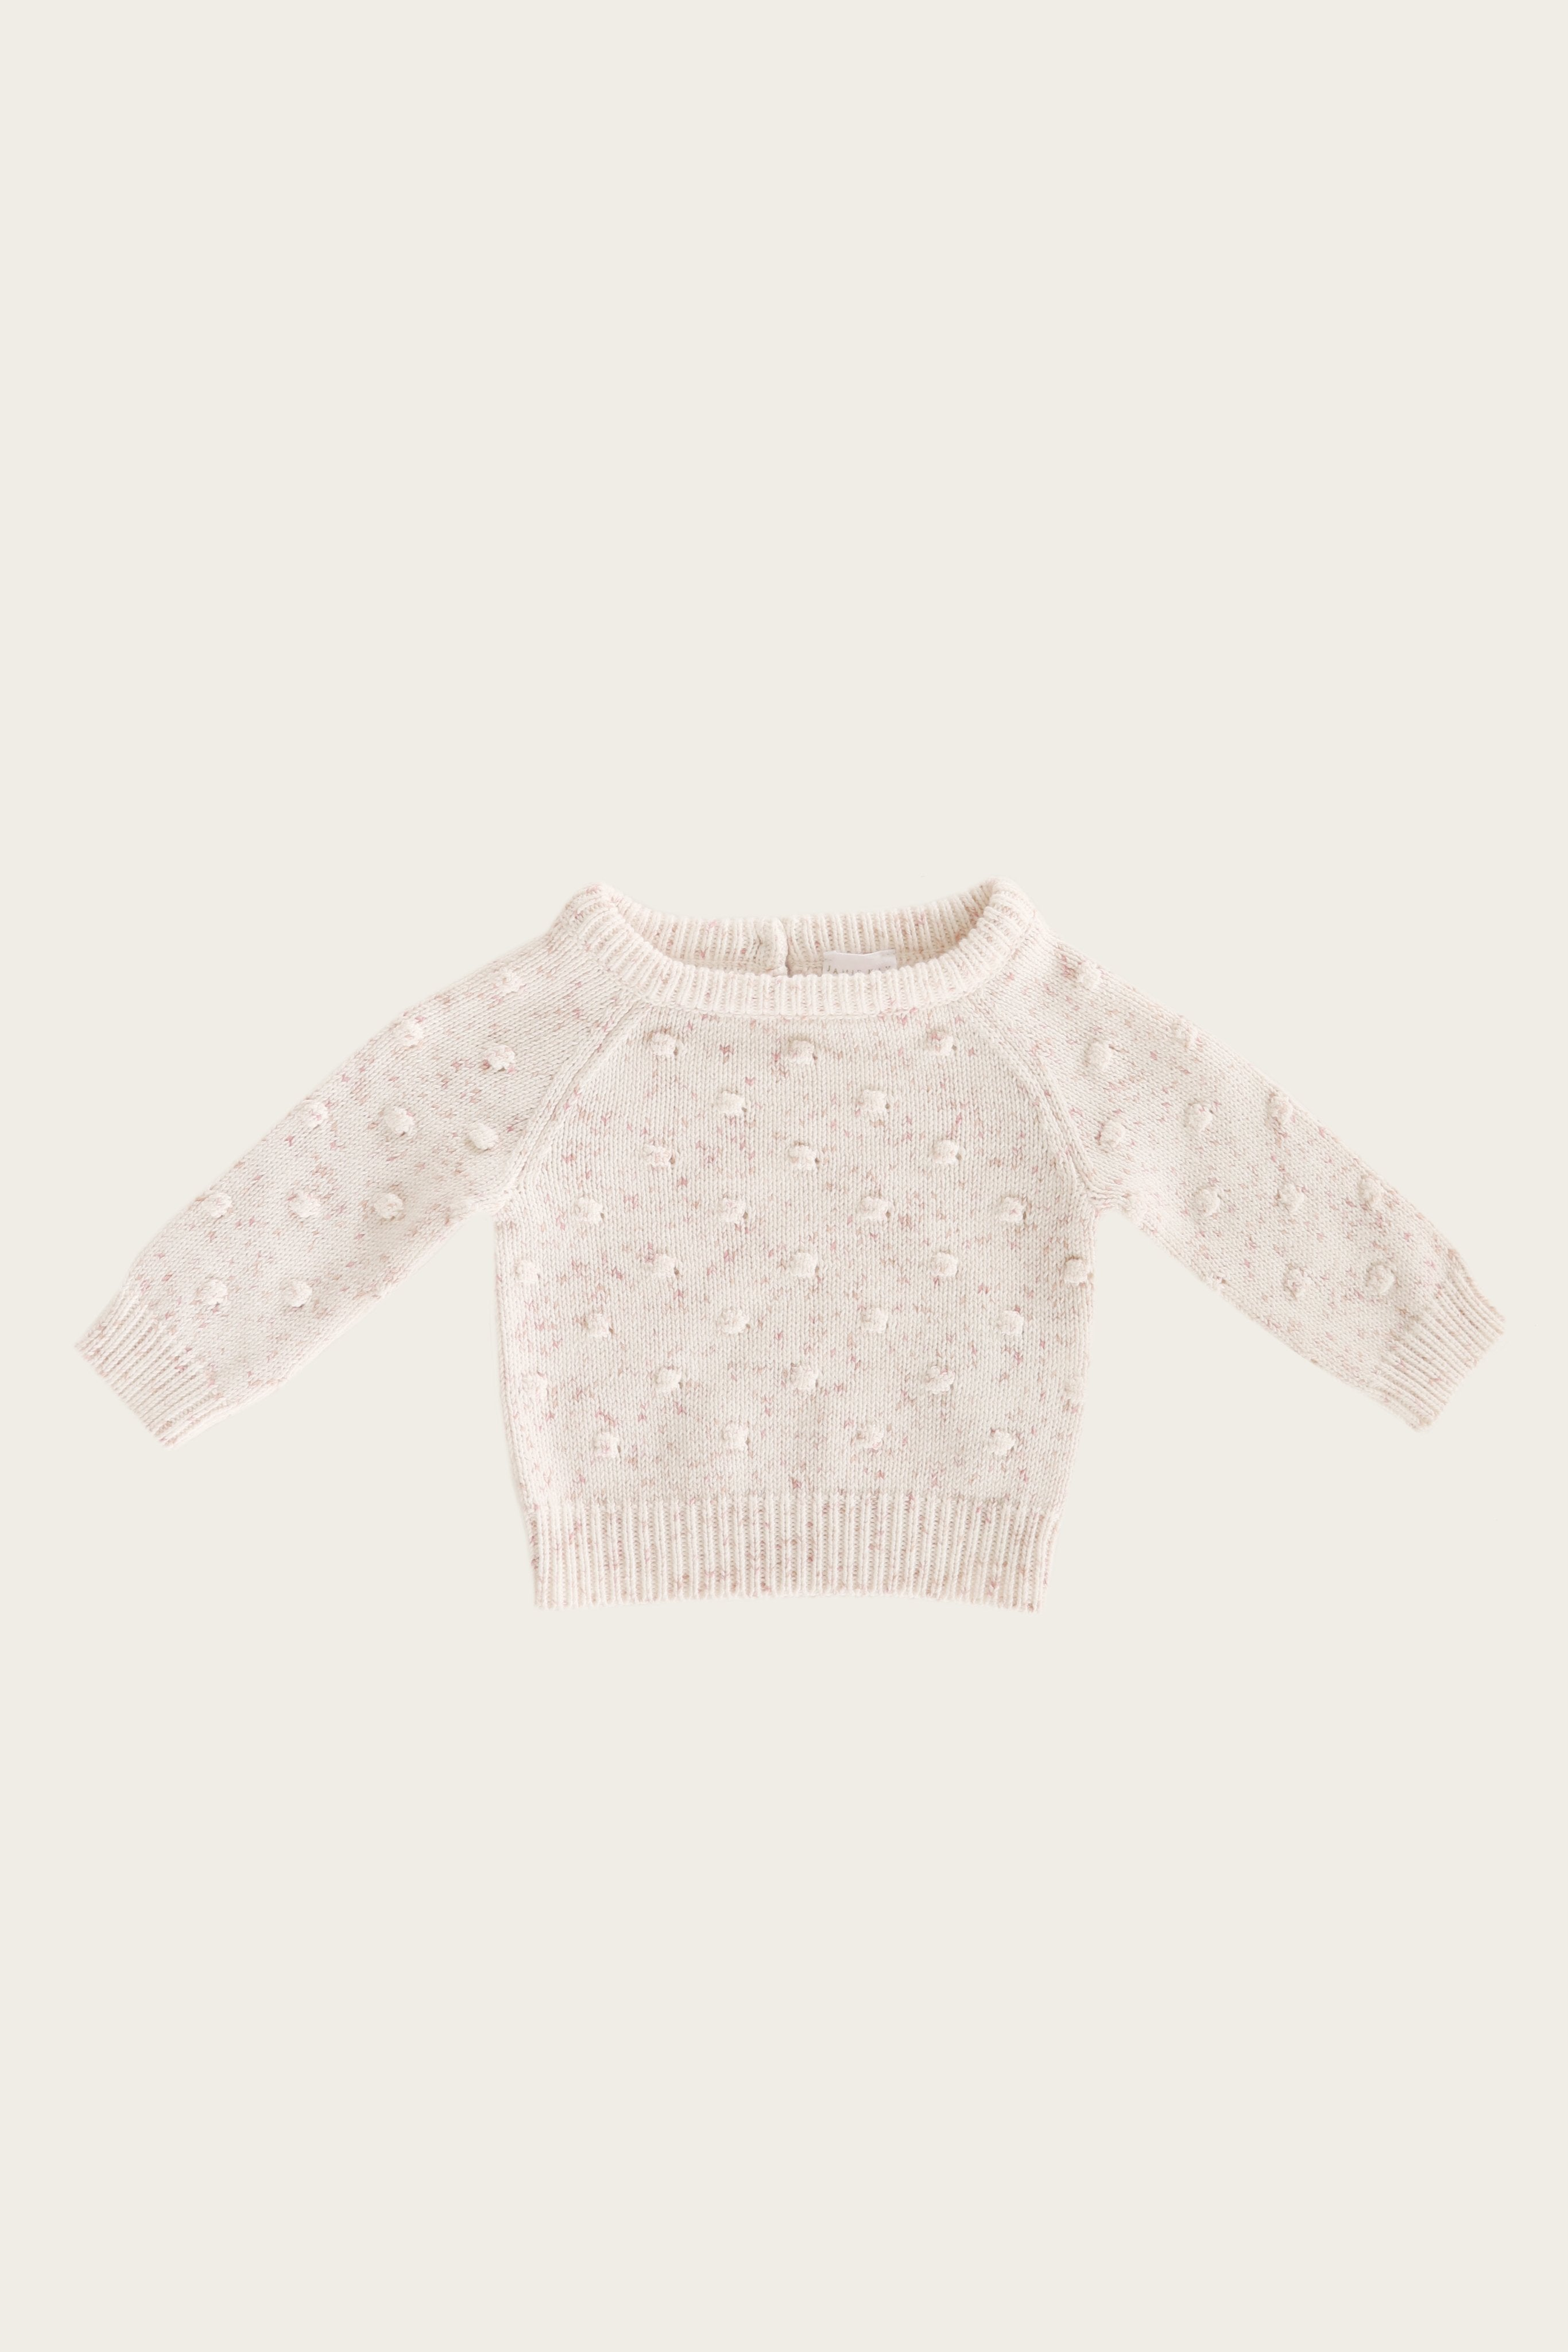 Dotty Knit - Candy Sprinkles